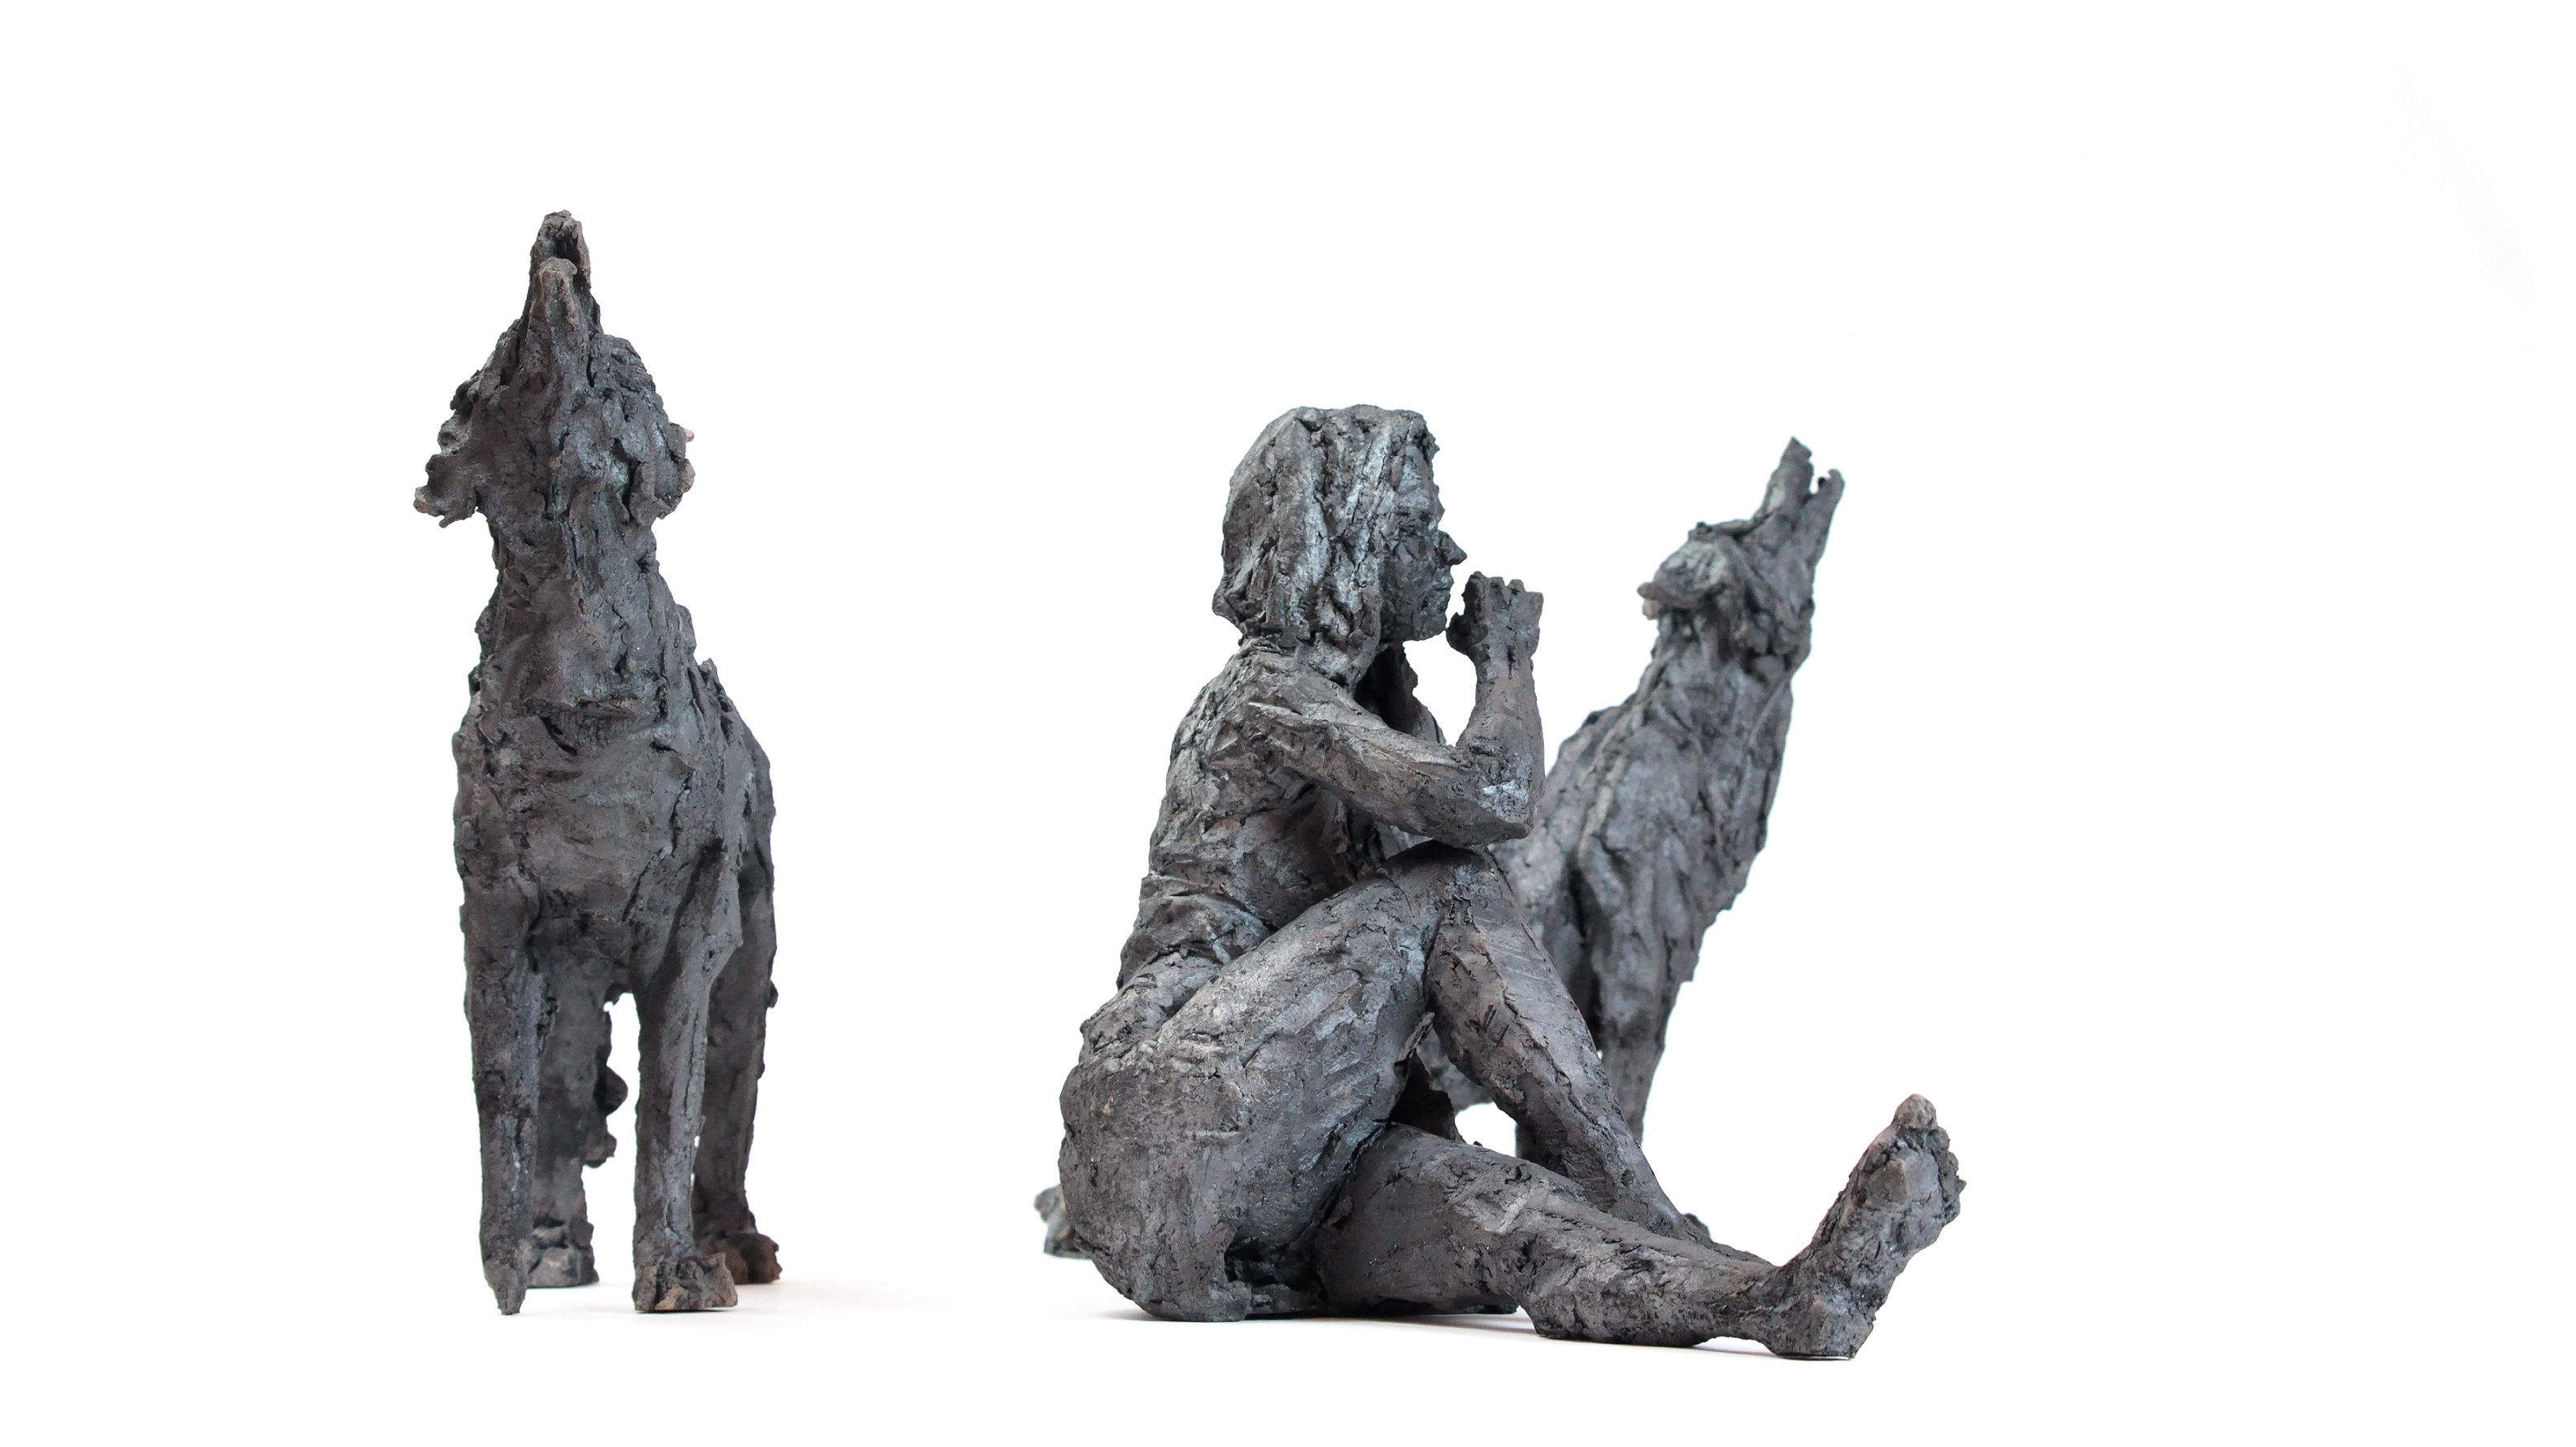 Wolf Pack,Cécile Raynal,Sculpture, detail 1